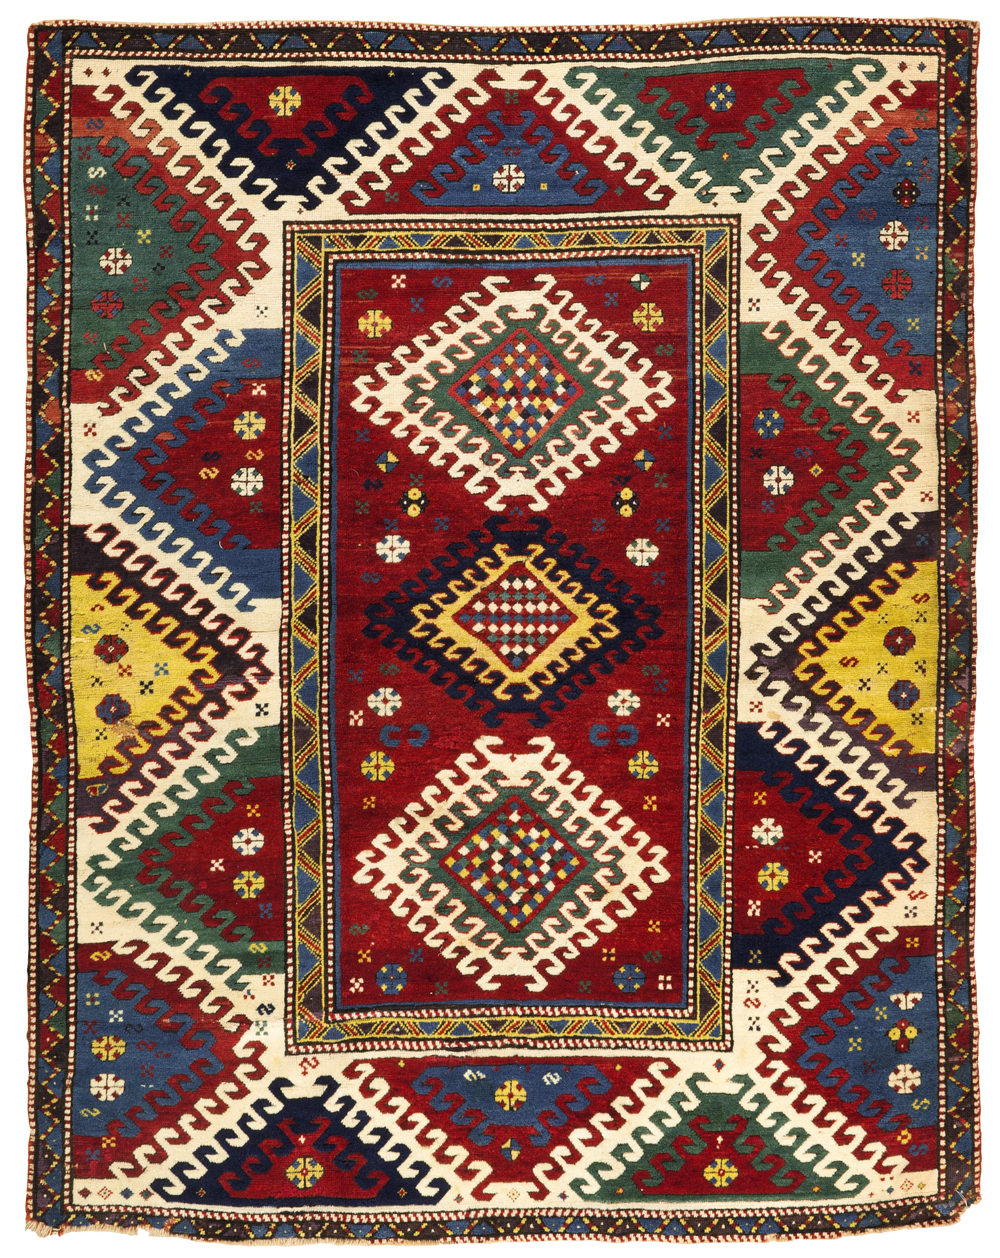 Lot 49 A Bordjalou Kazak Rug West Caucasus Sotheby S